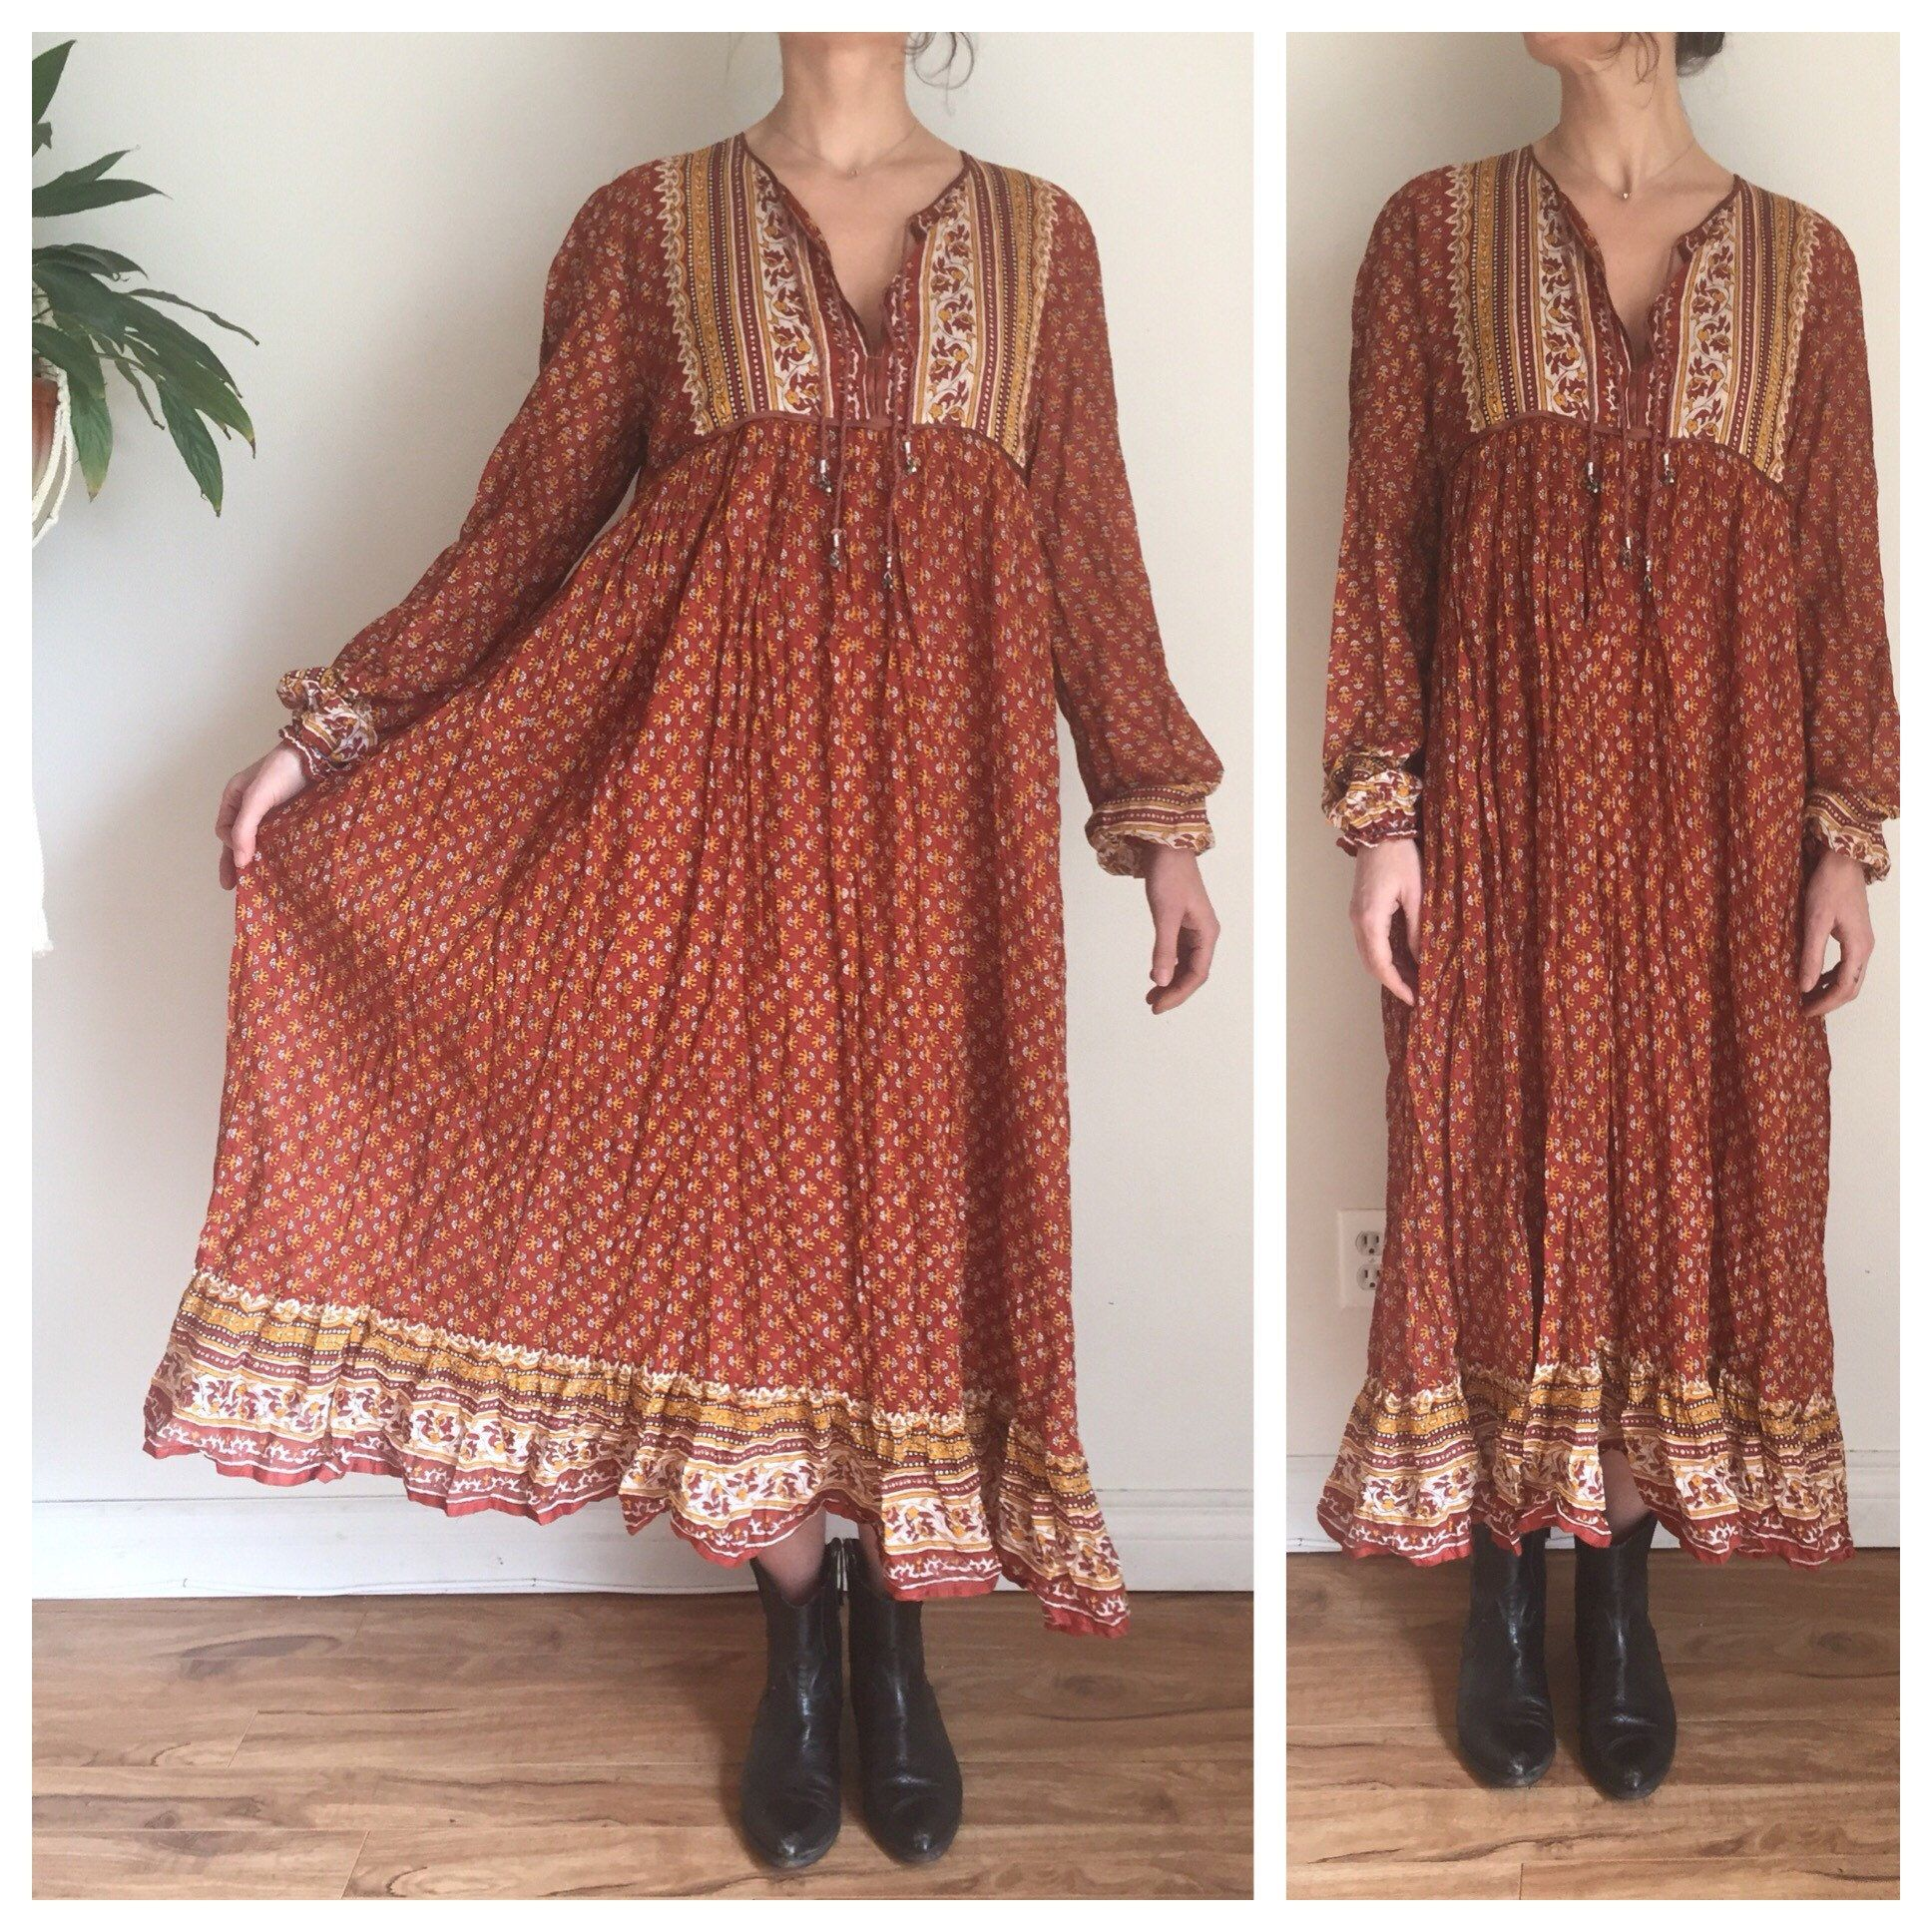 019e3405bd3 Indian Cotton Gauze Dress Vintage 70s Dress Thin Cotton Dress